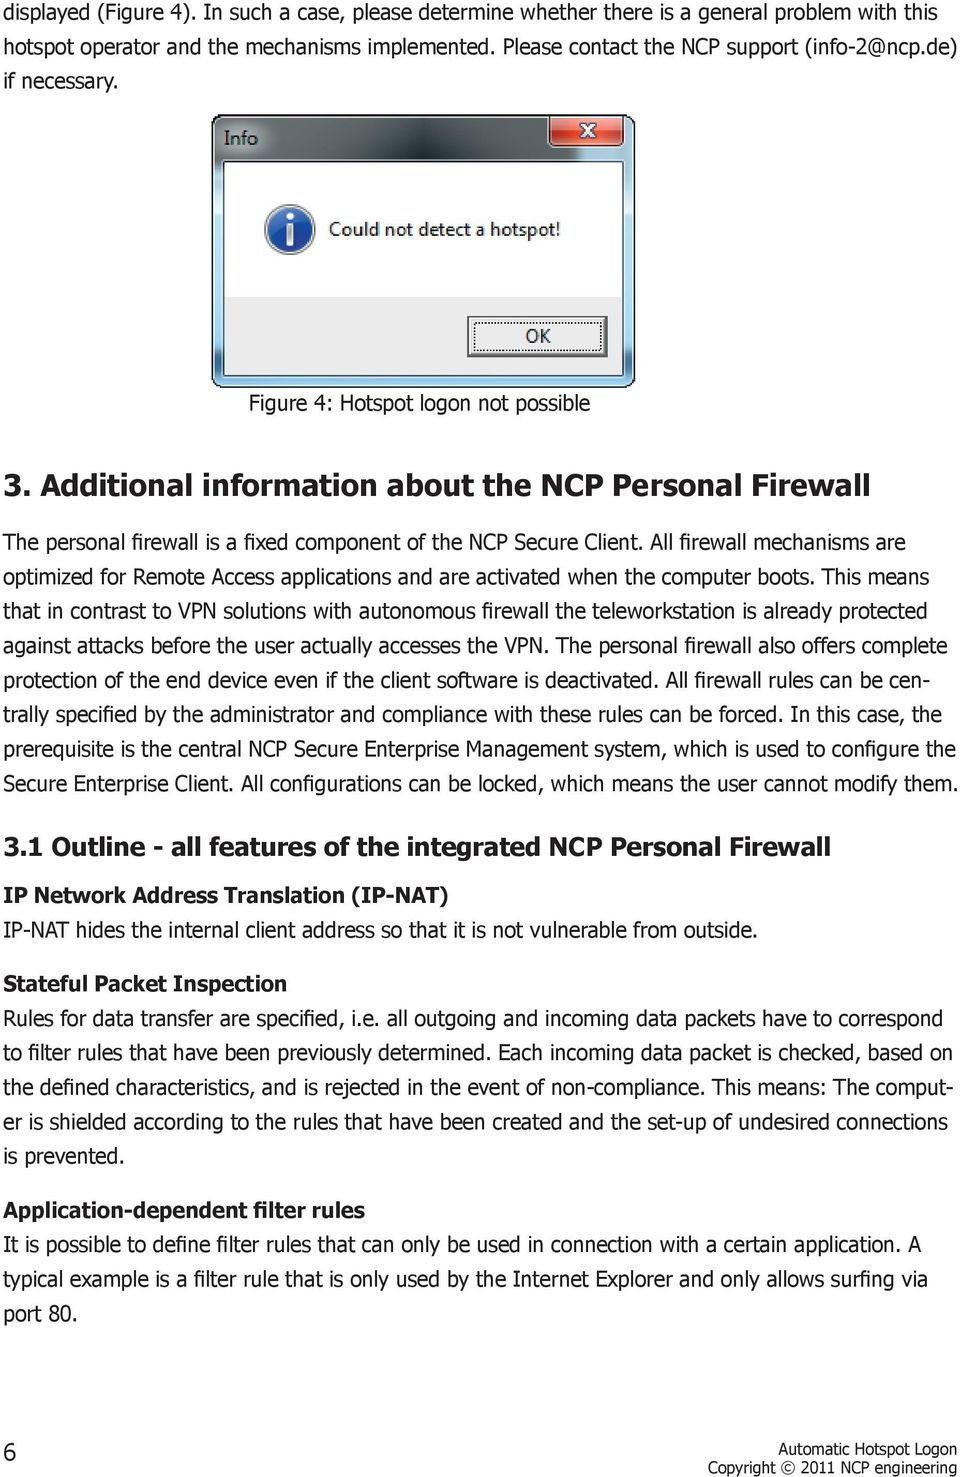 All firewall mechanisms are optimized for Remote Access applications and are activated when the computer boots.